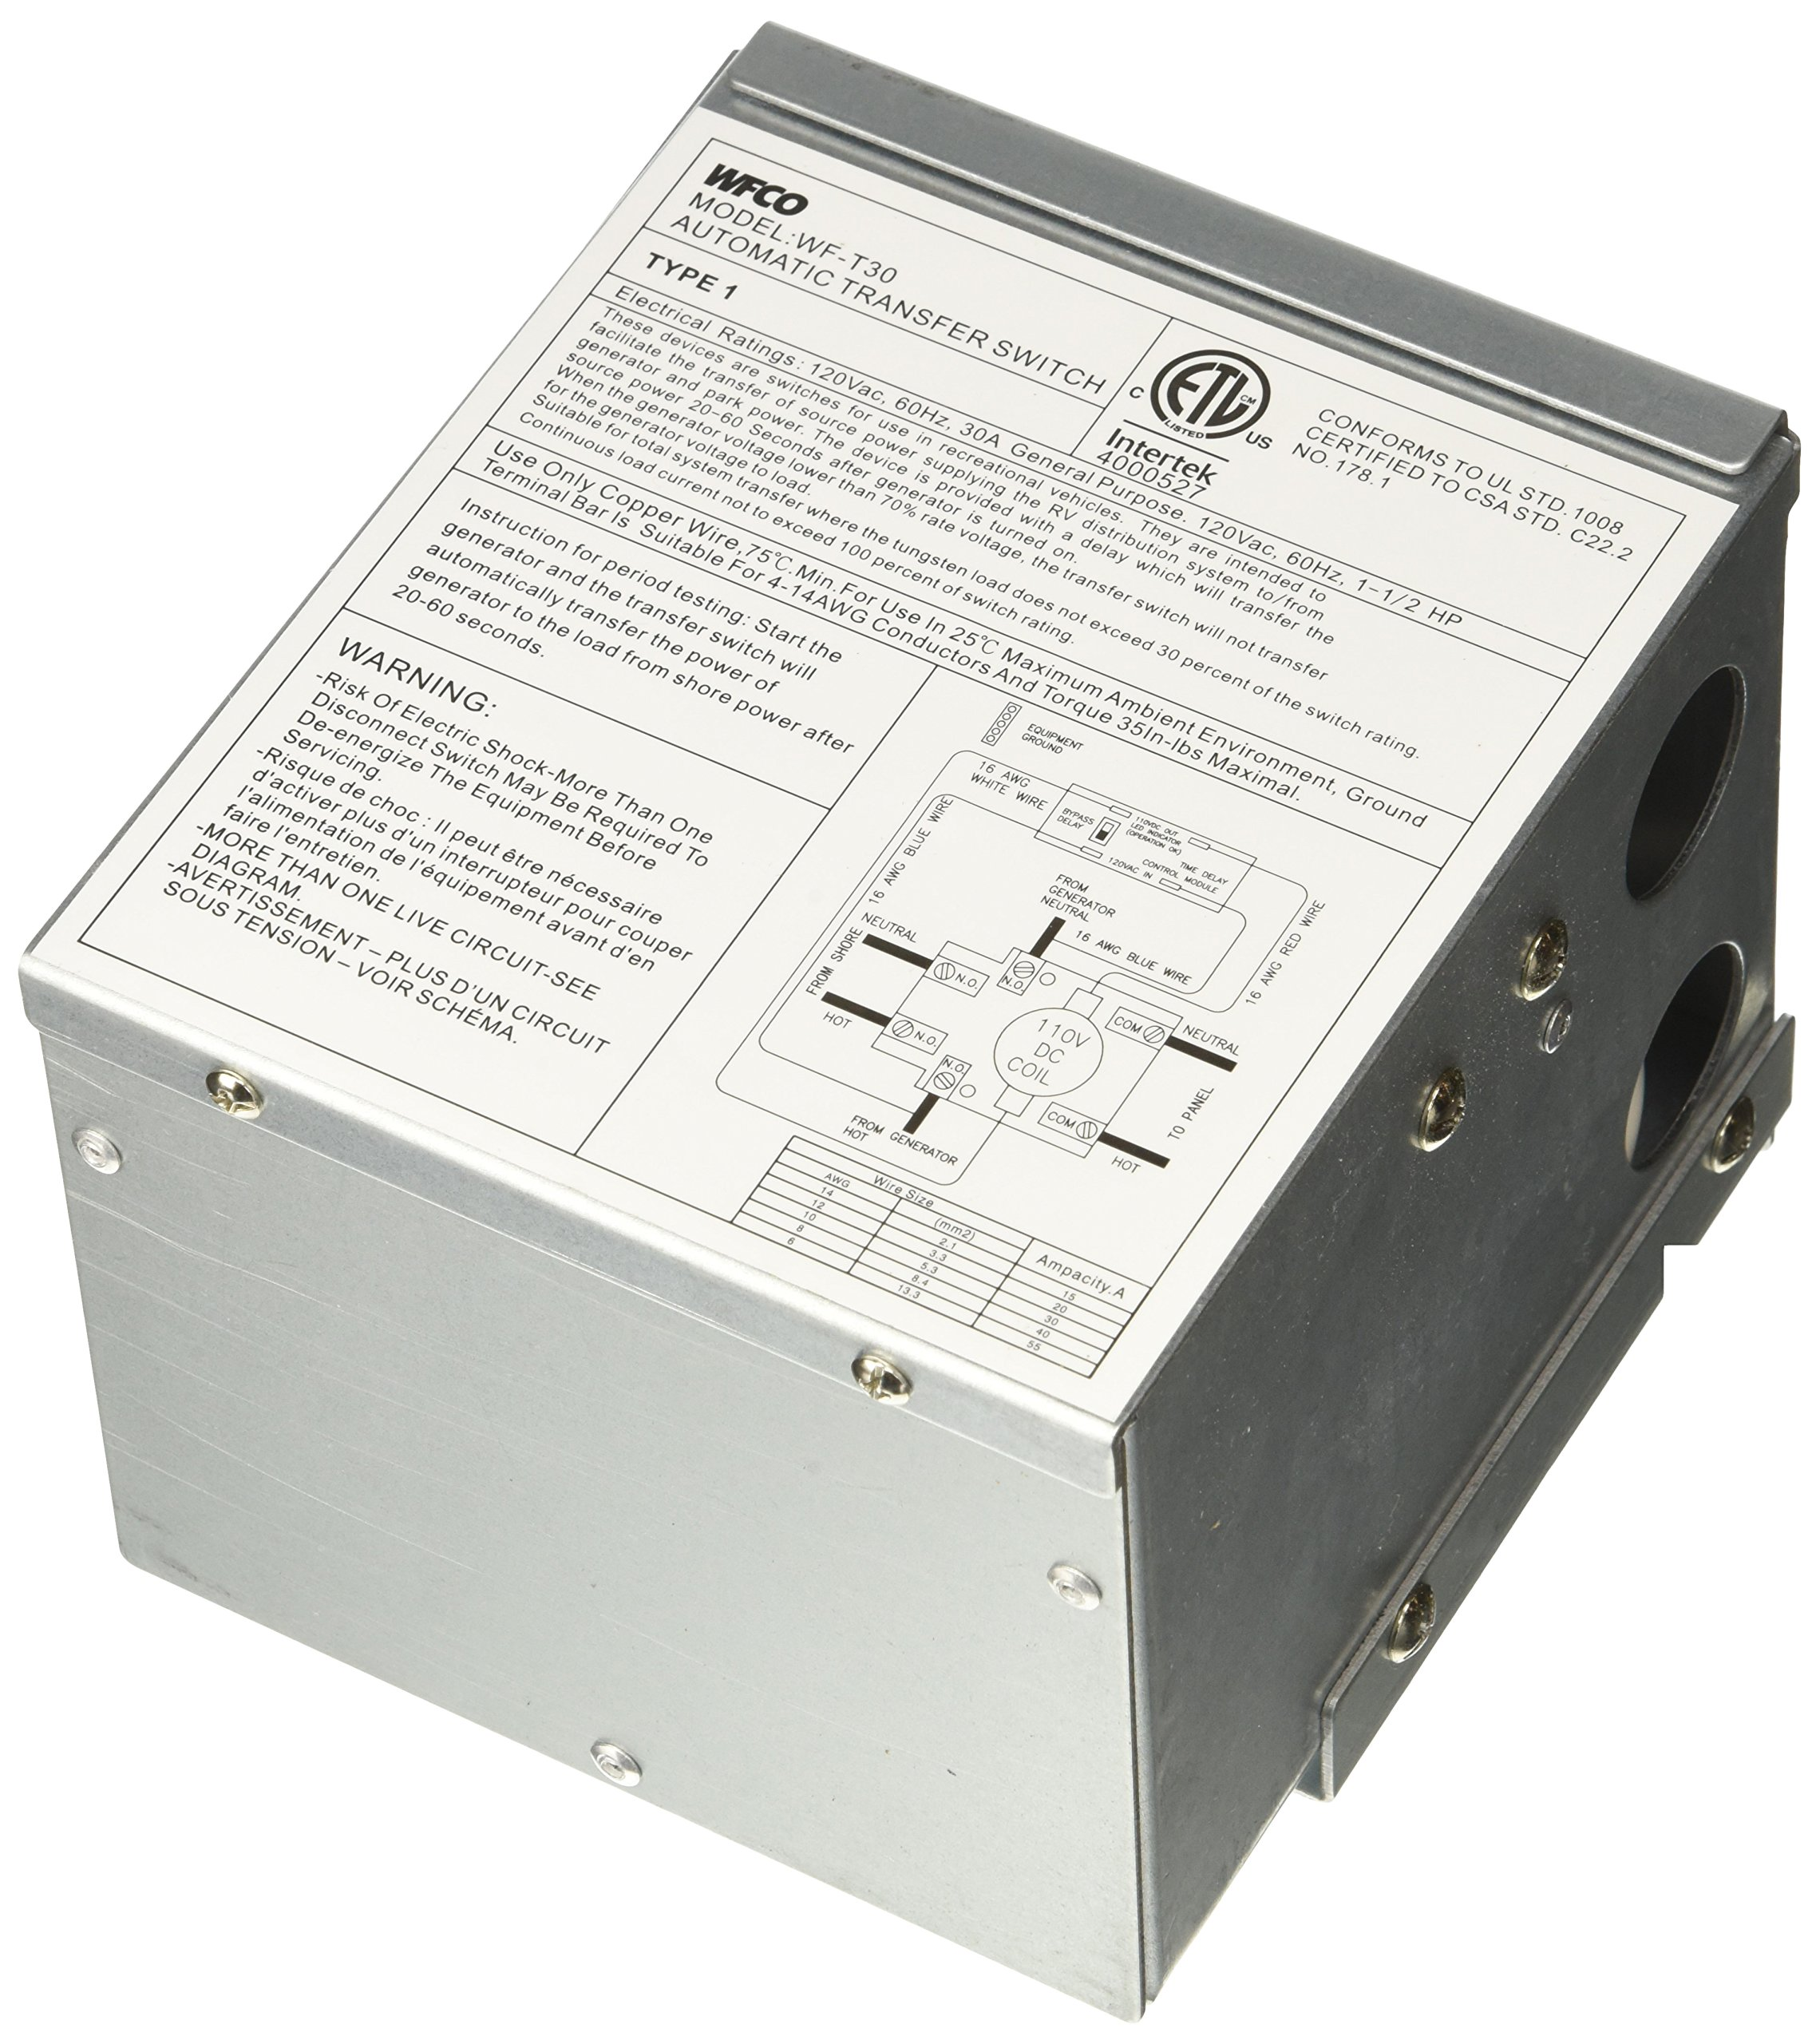 WFCO T30 30 Amp Transfer Switch by WFCO